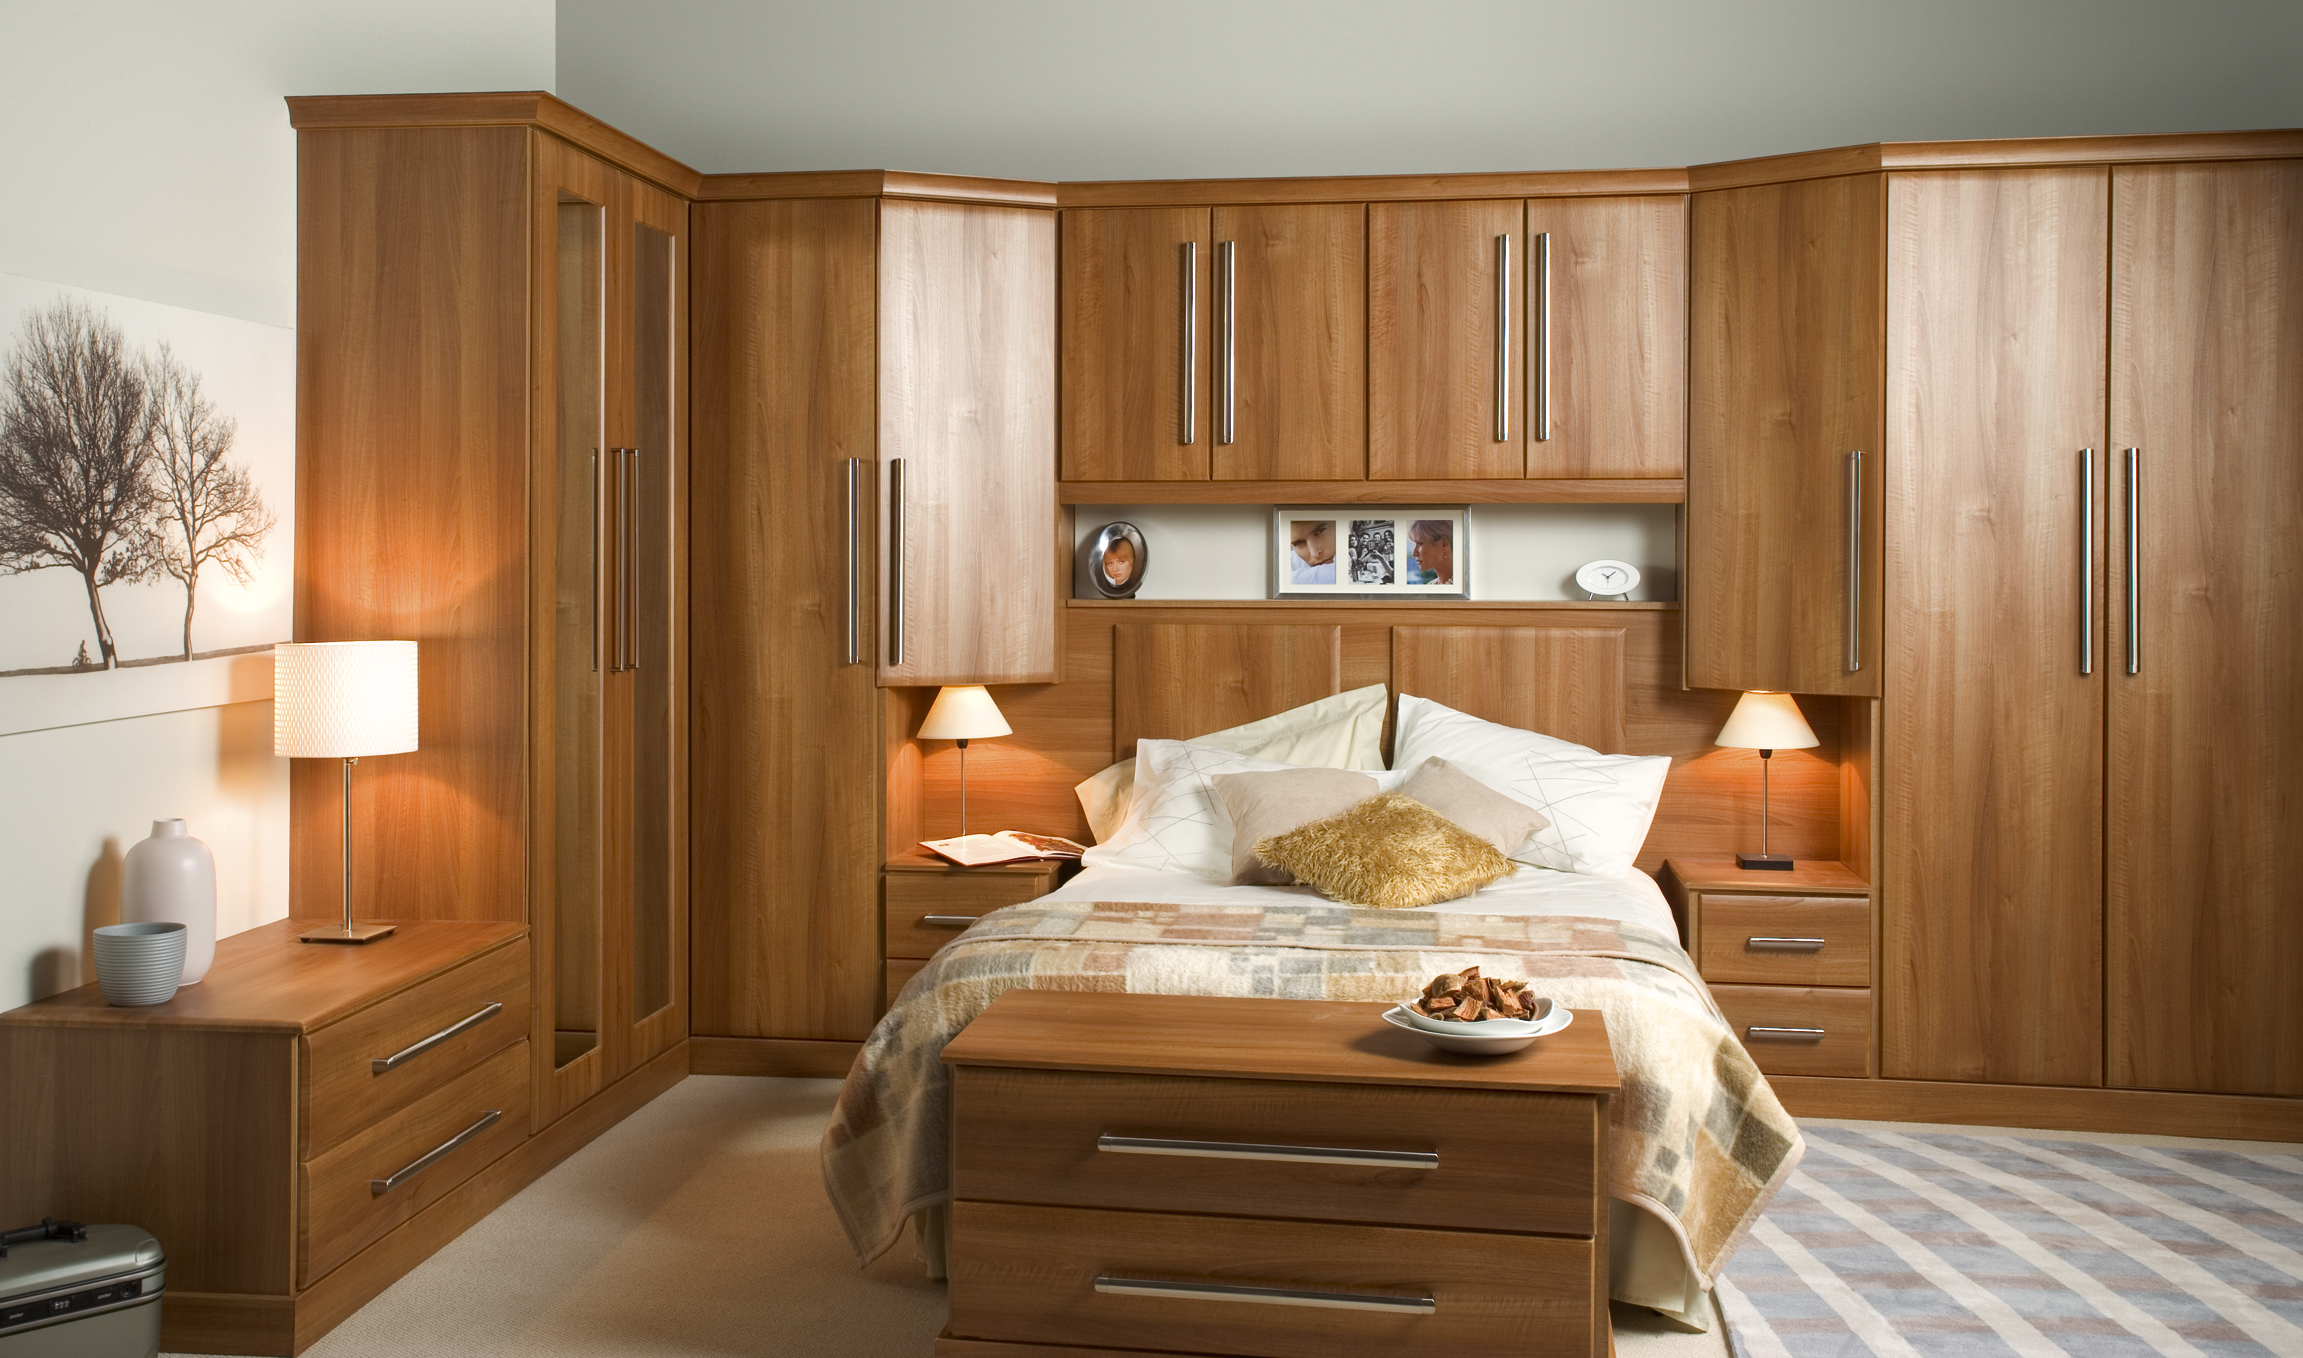 Clarke interiors fitted bedrooms - Image for bed room ...